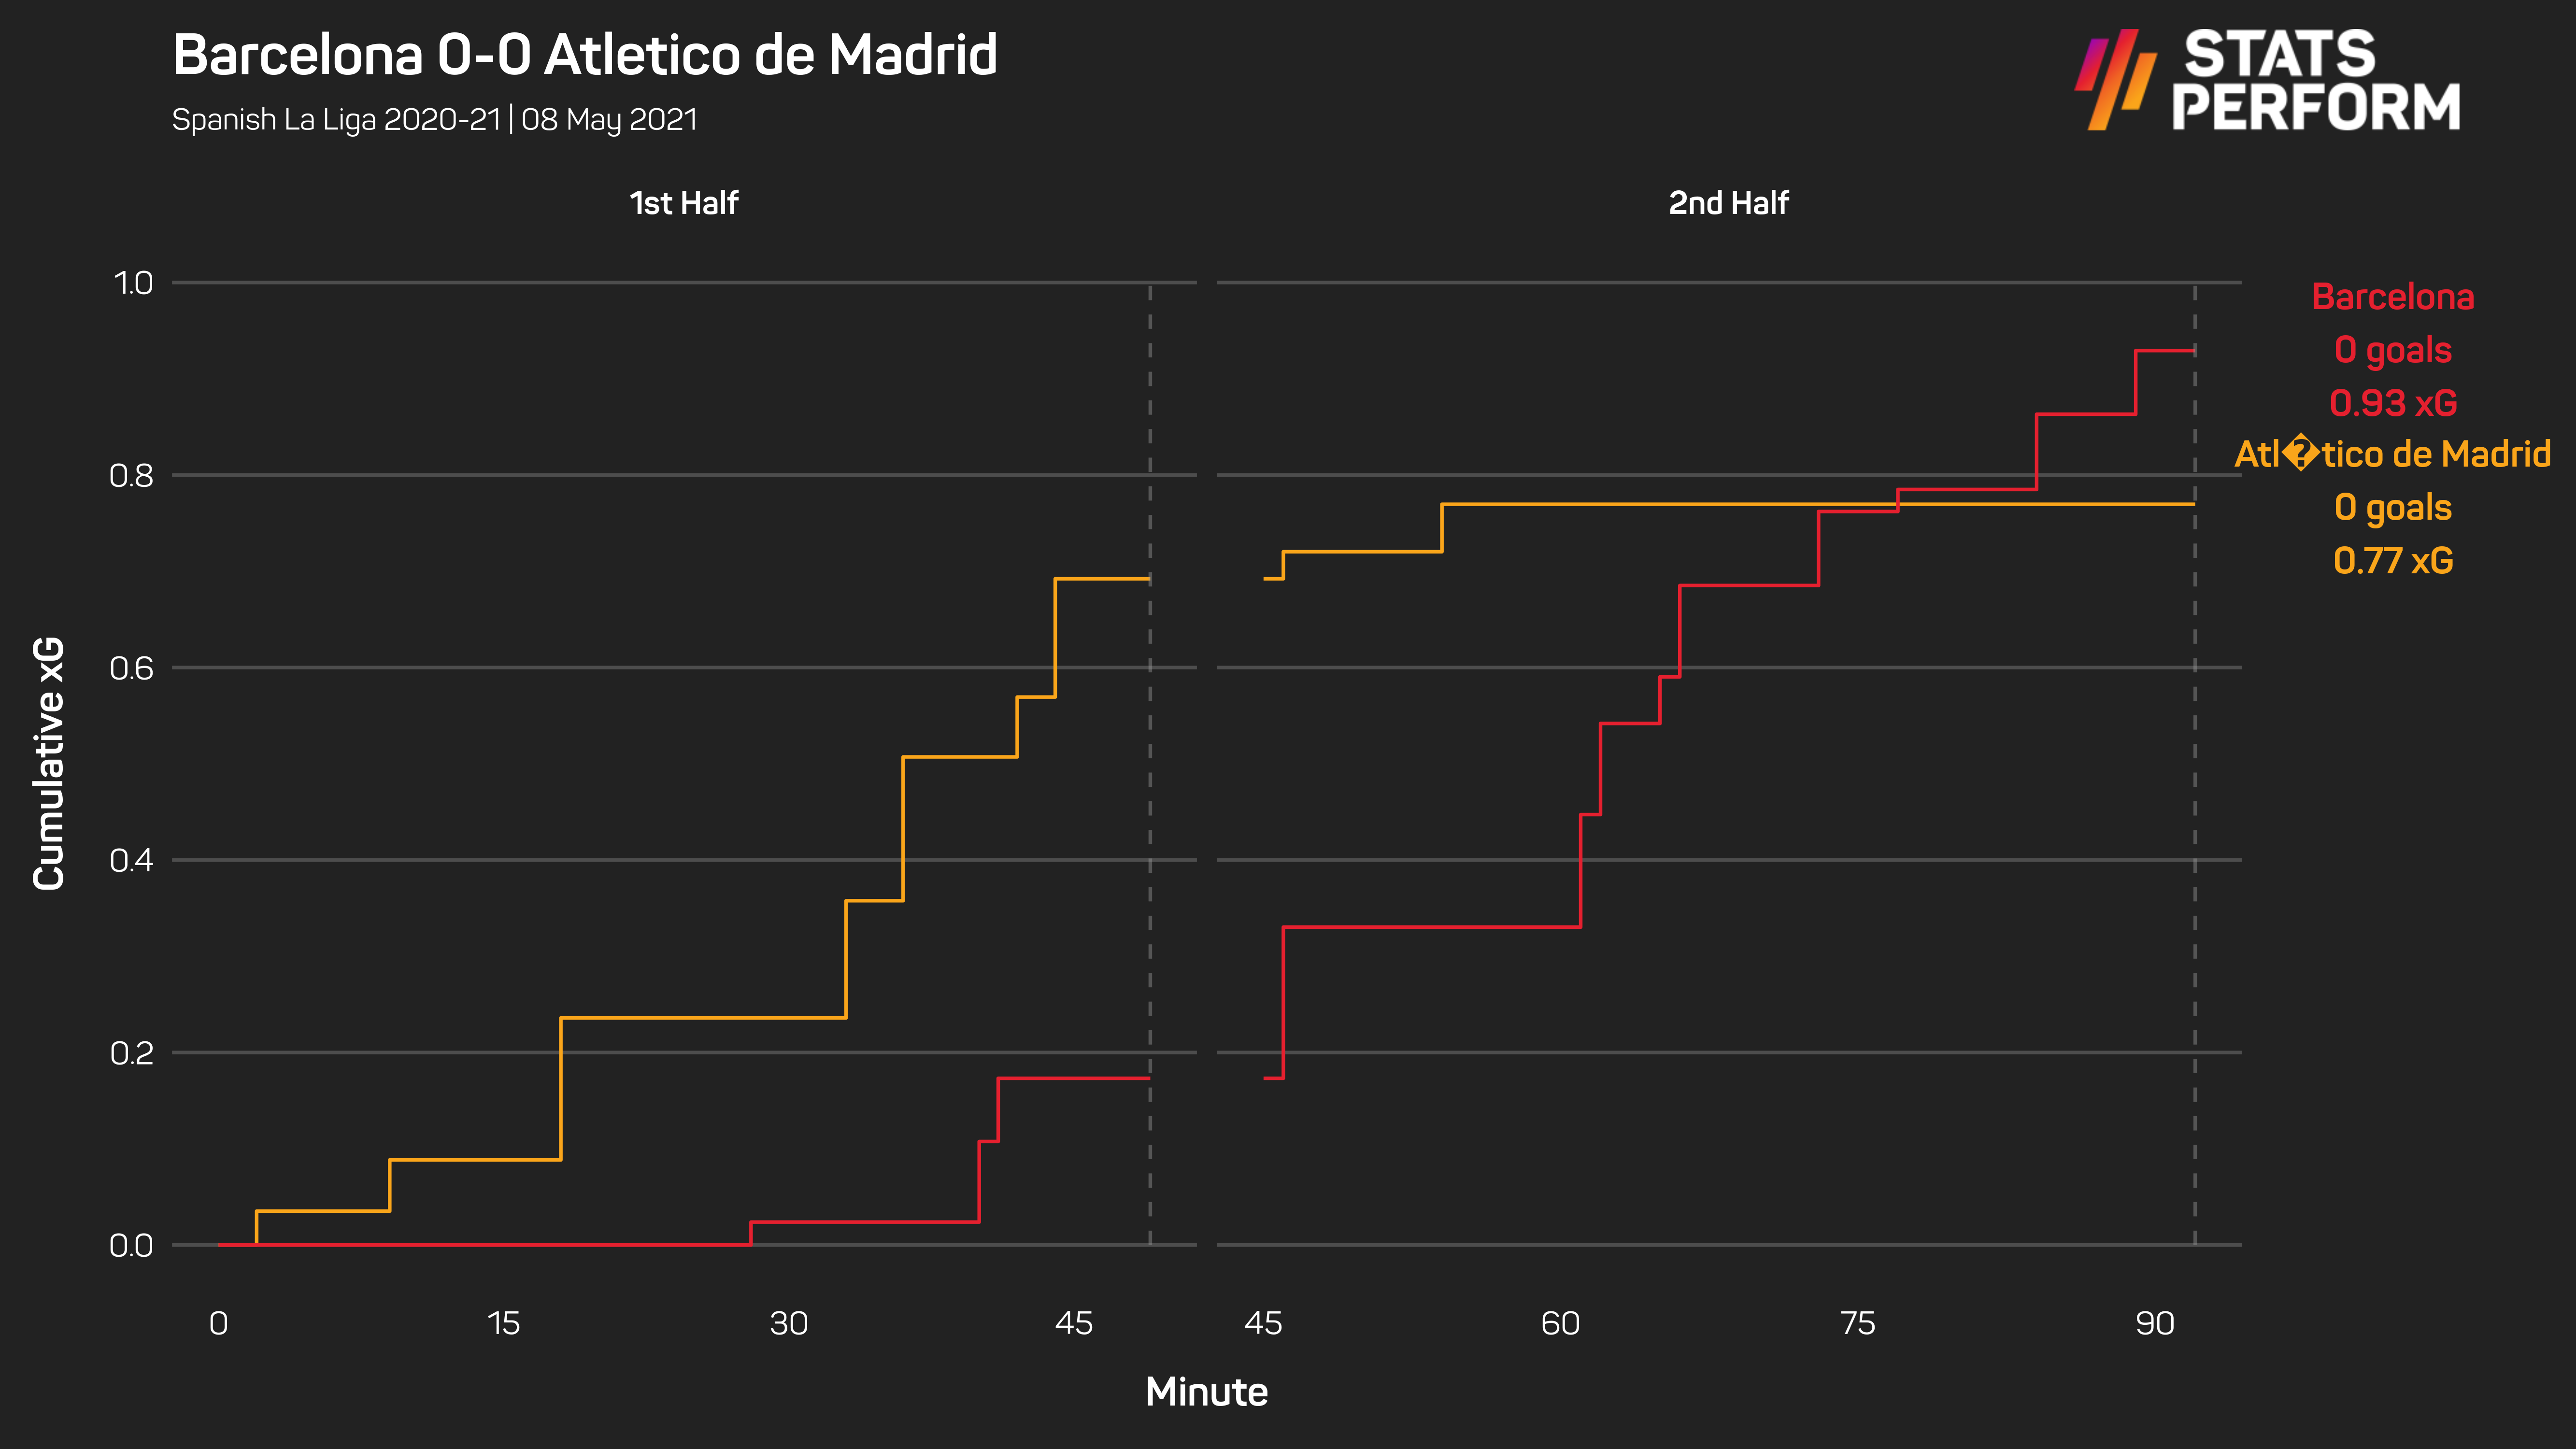 Atletico's draw at Barcelona did not cost them